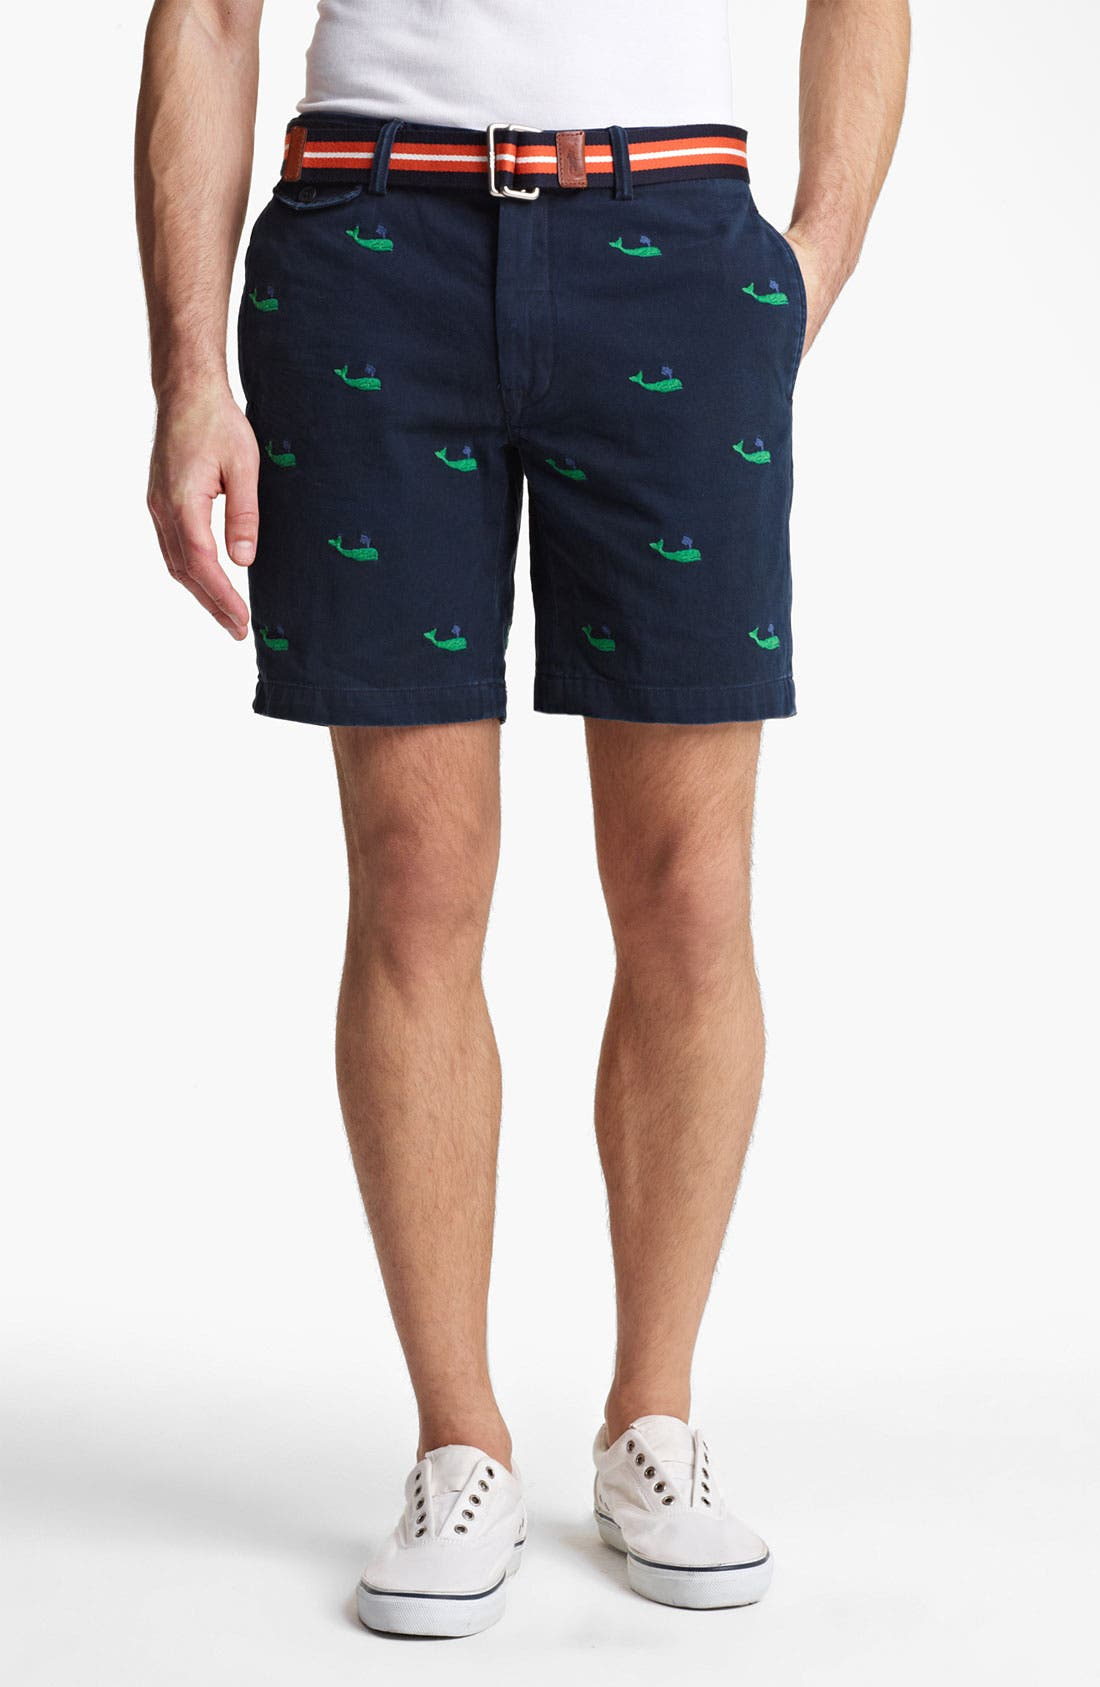 Alternate Image 1 Selected - Polo Ralph Lauren 'Officer's' Chino Shorts